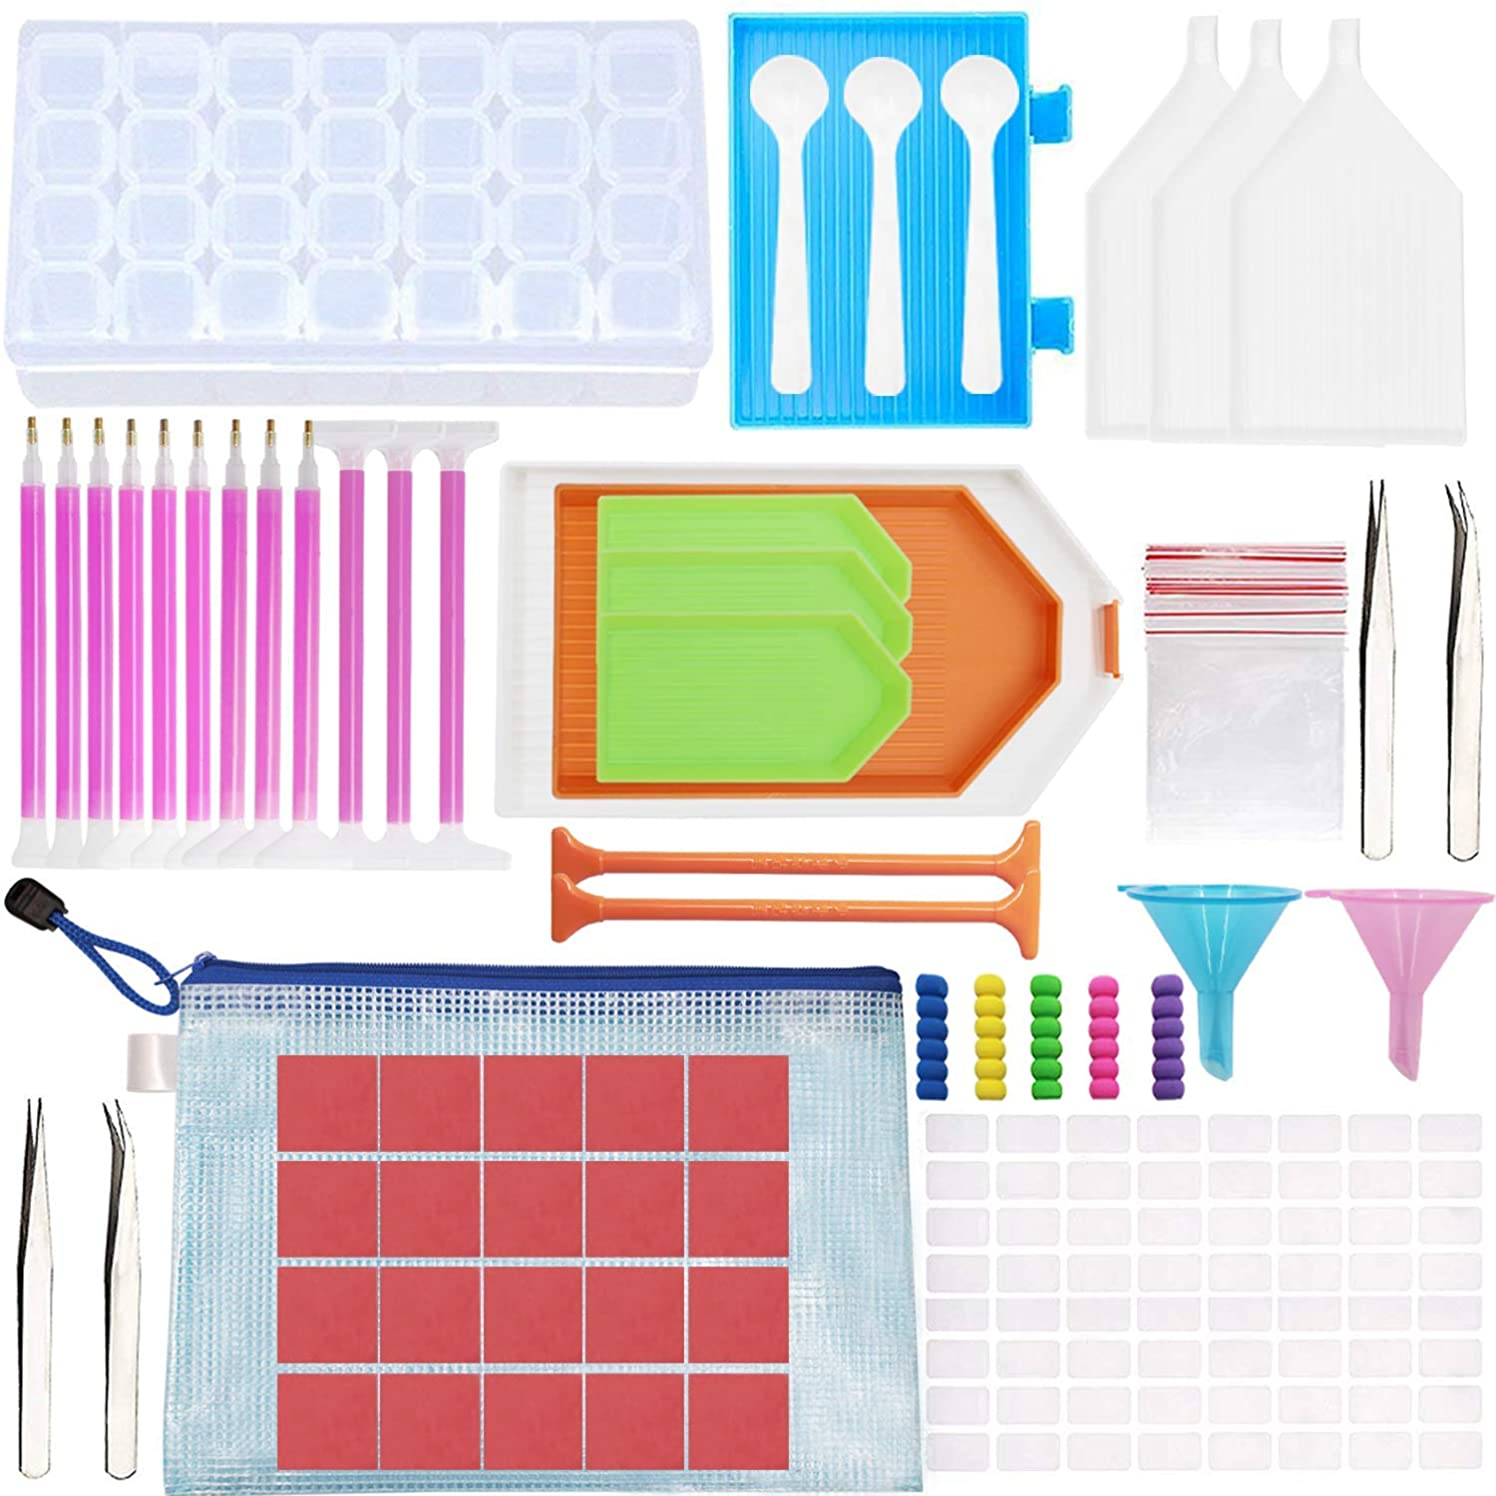 Bestlus 121 Pcs Diamond Painting Kits Tools Accessories for Adults Kids with 28 Slots Storage Containers